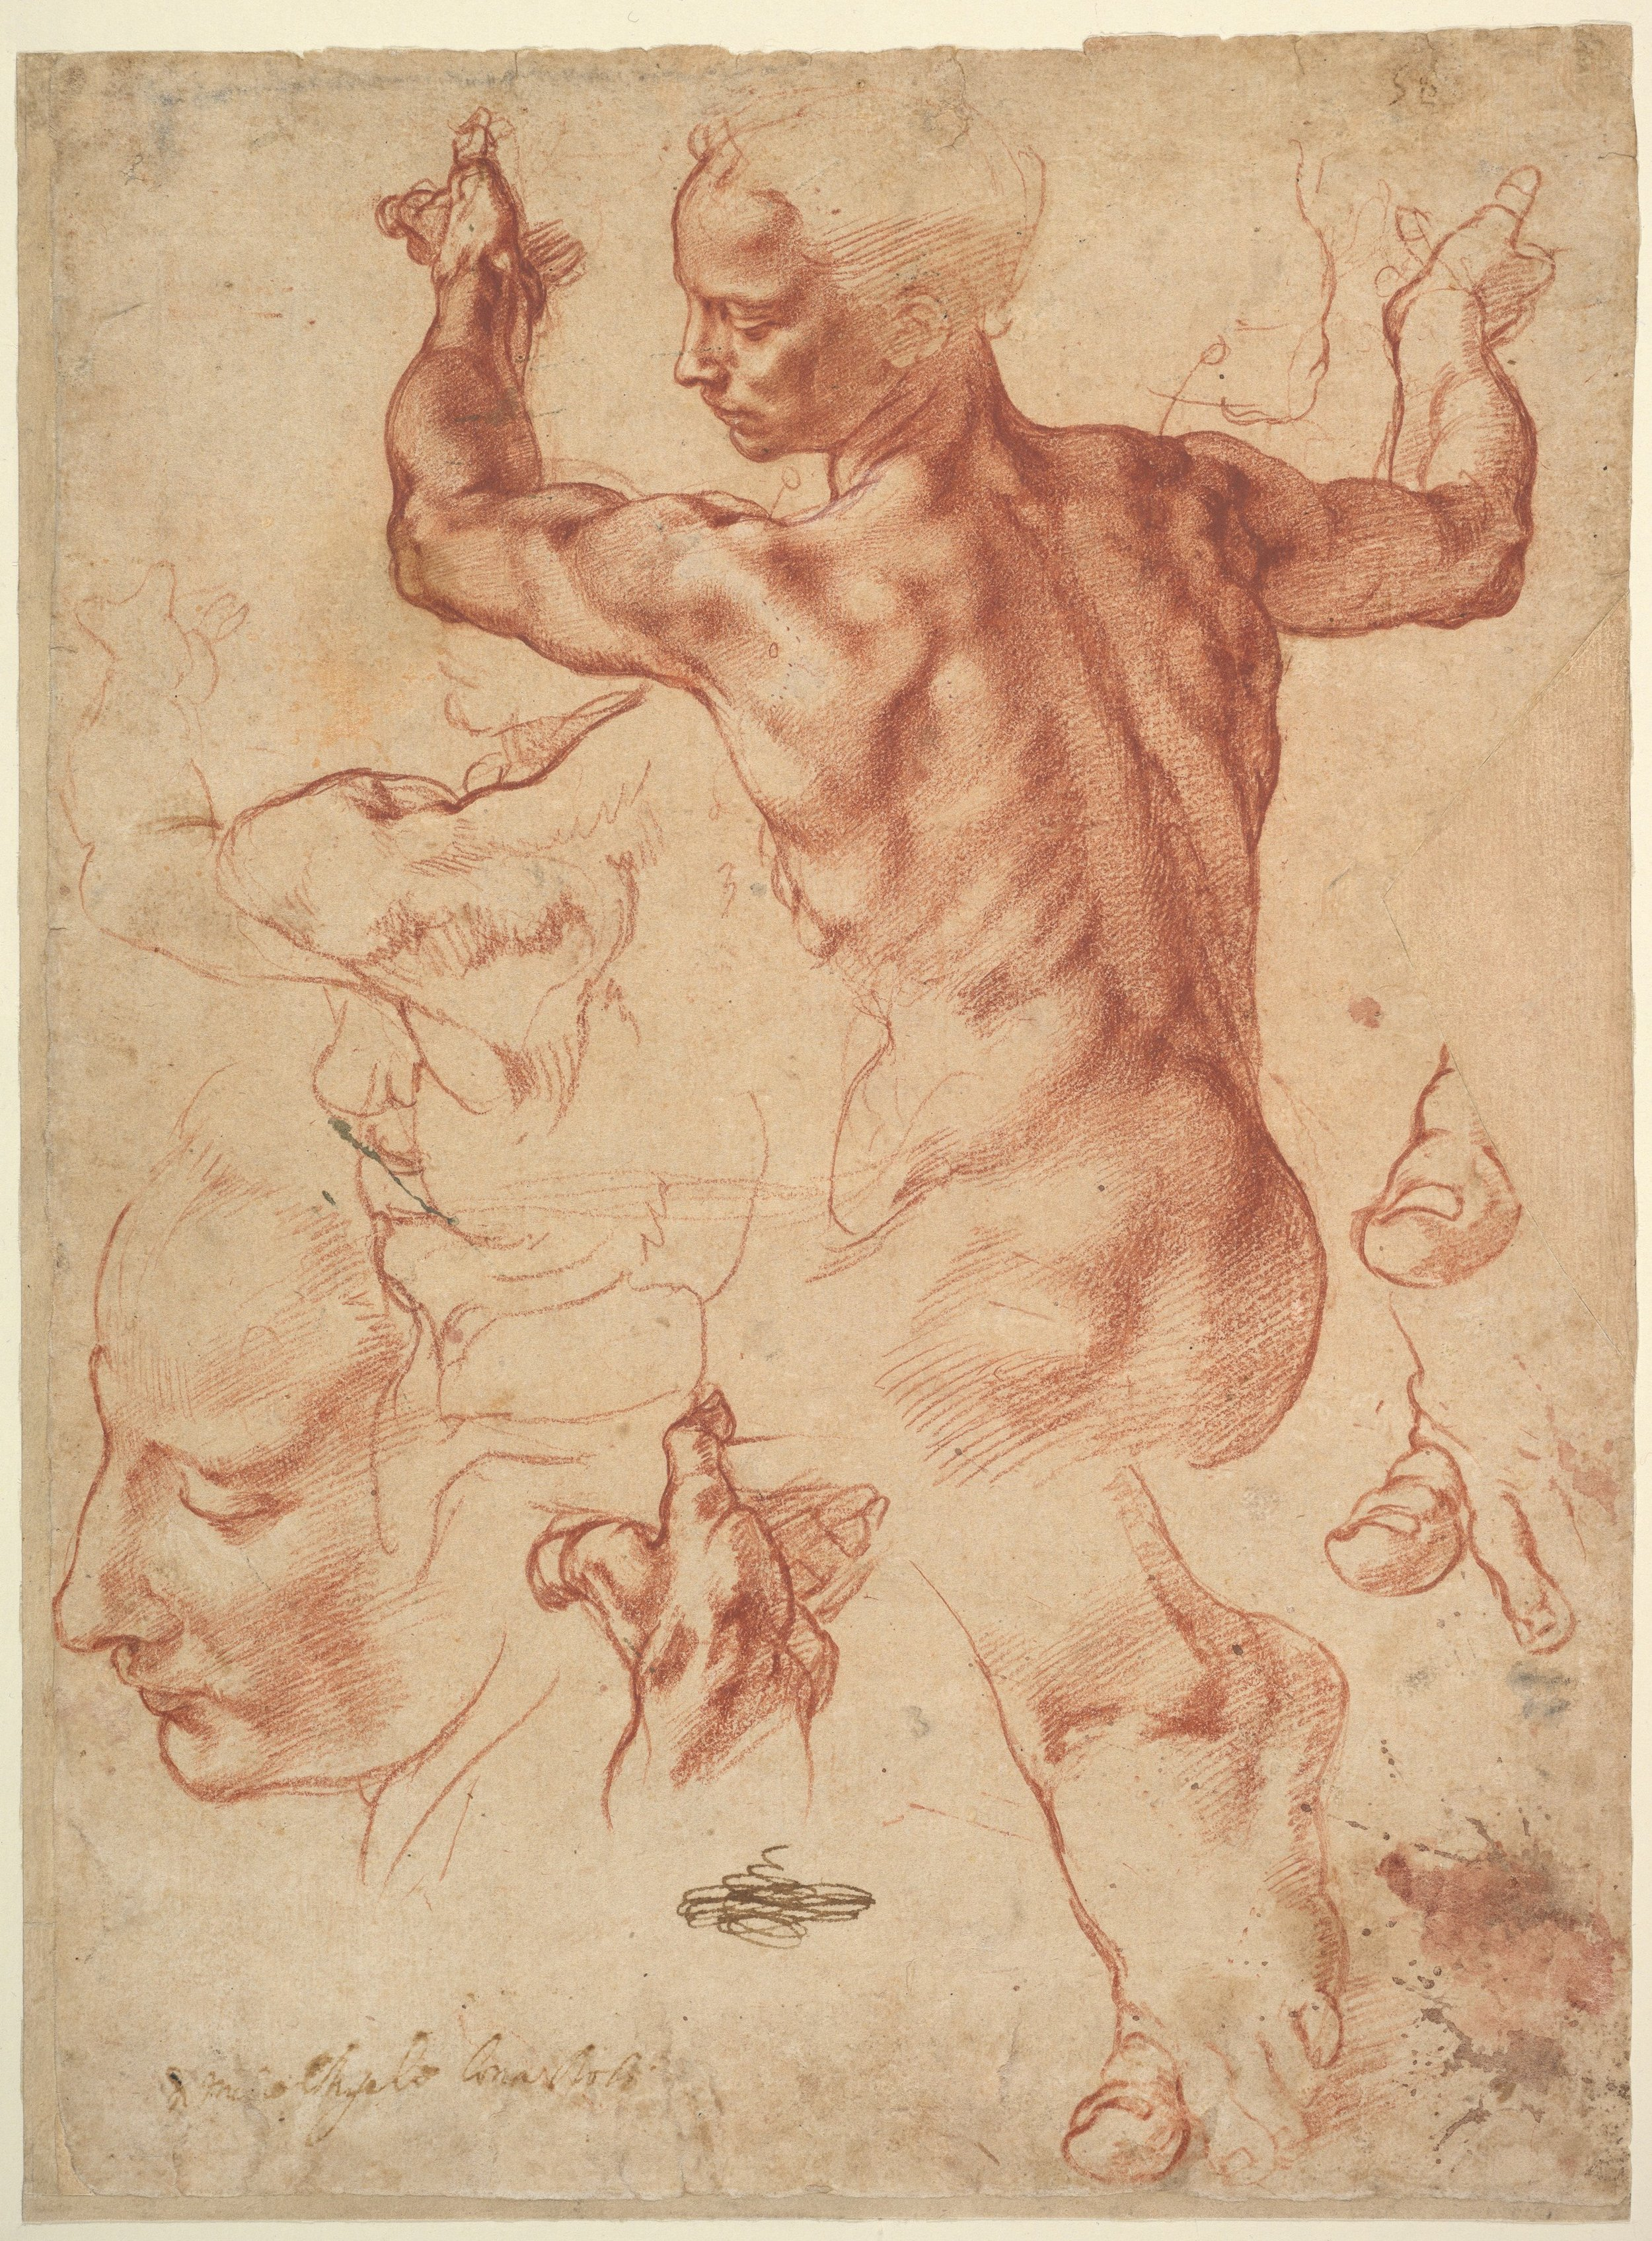 Drawing by Michelangelo, from the collection of the Metropolitan Museum of Art